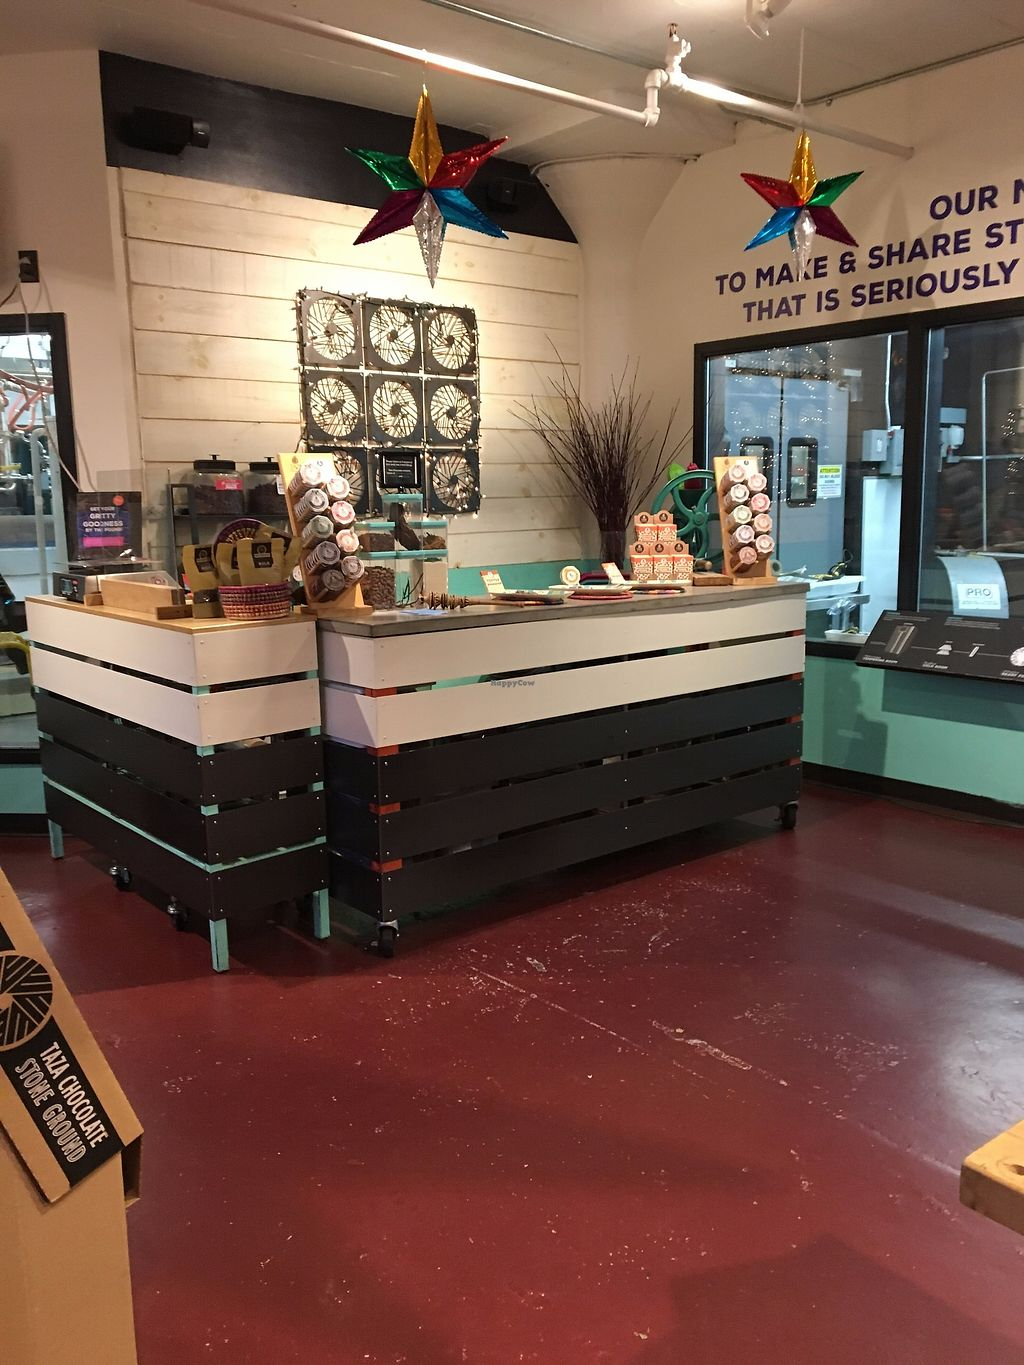 """Photo of Taza Chocolate  by <a href=""""/members/profile/sophiefrenchfry"""">sophiefrenchfry</a> <br/>Interior of Taza store <br/> December 7, 2017  - <a href='/contact/abuse/image/30701/333245'>Report</a>"""